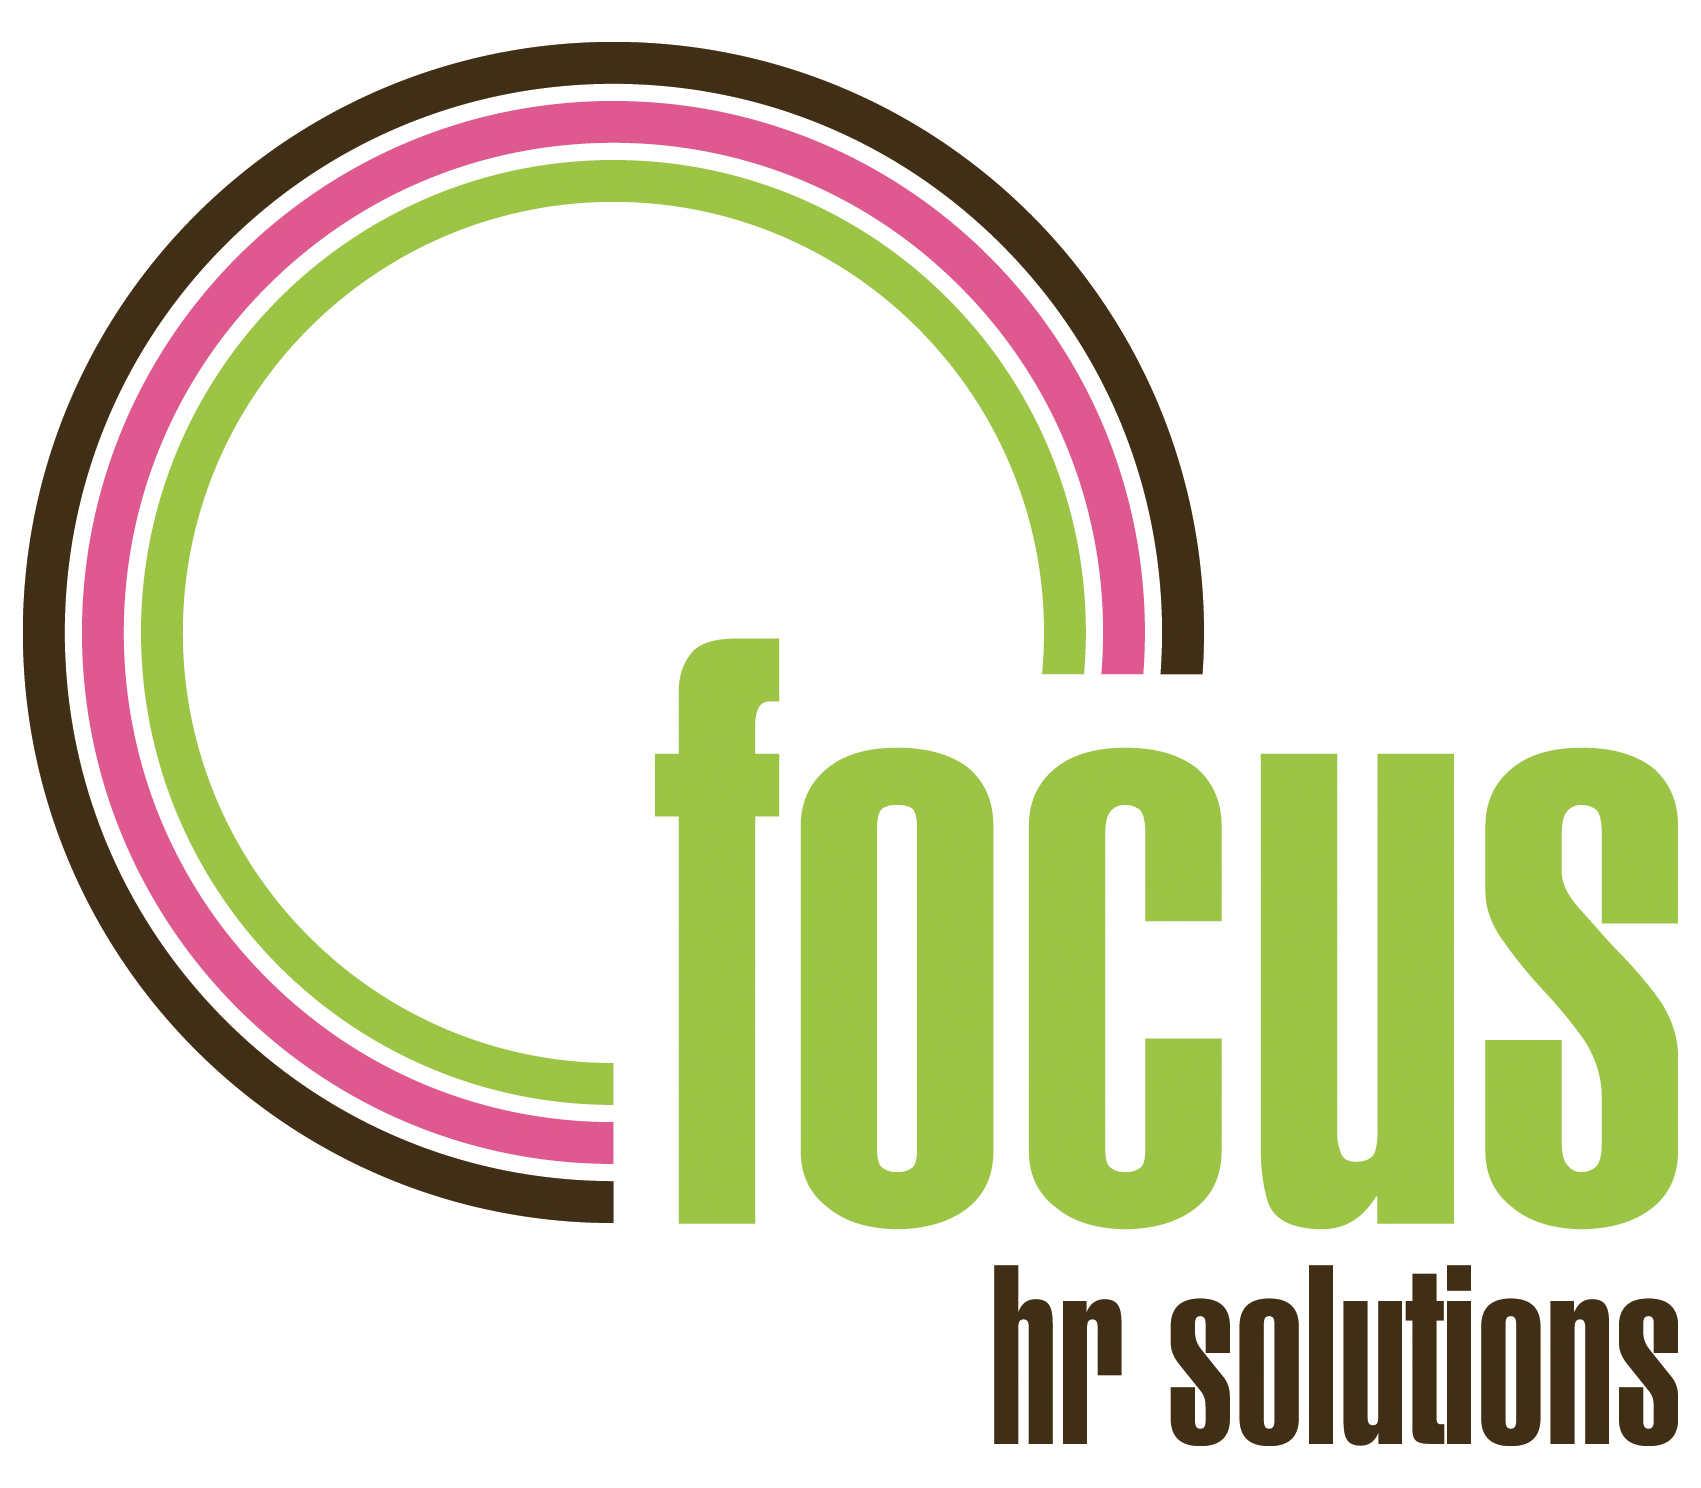 Focus HR Solutions Ltd